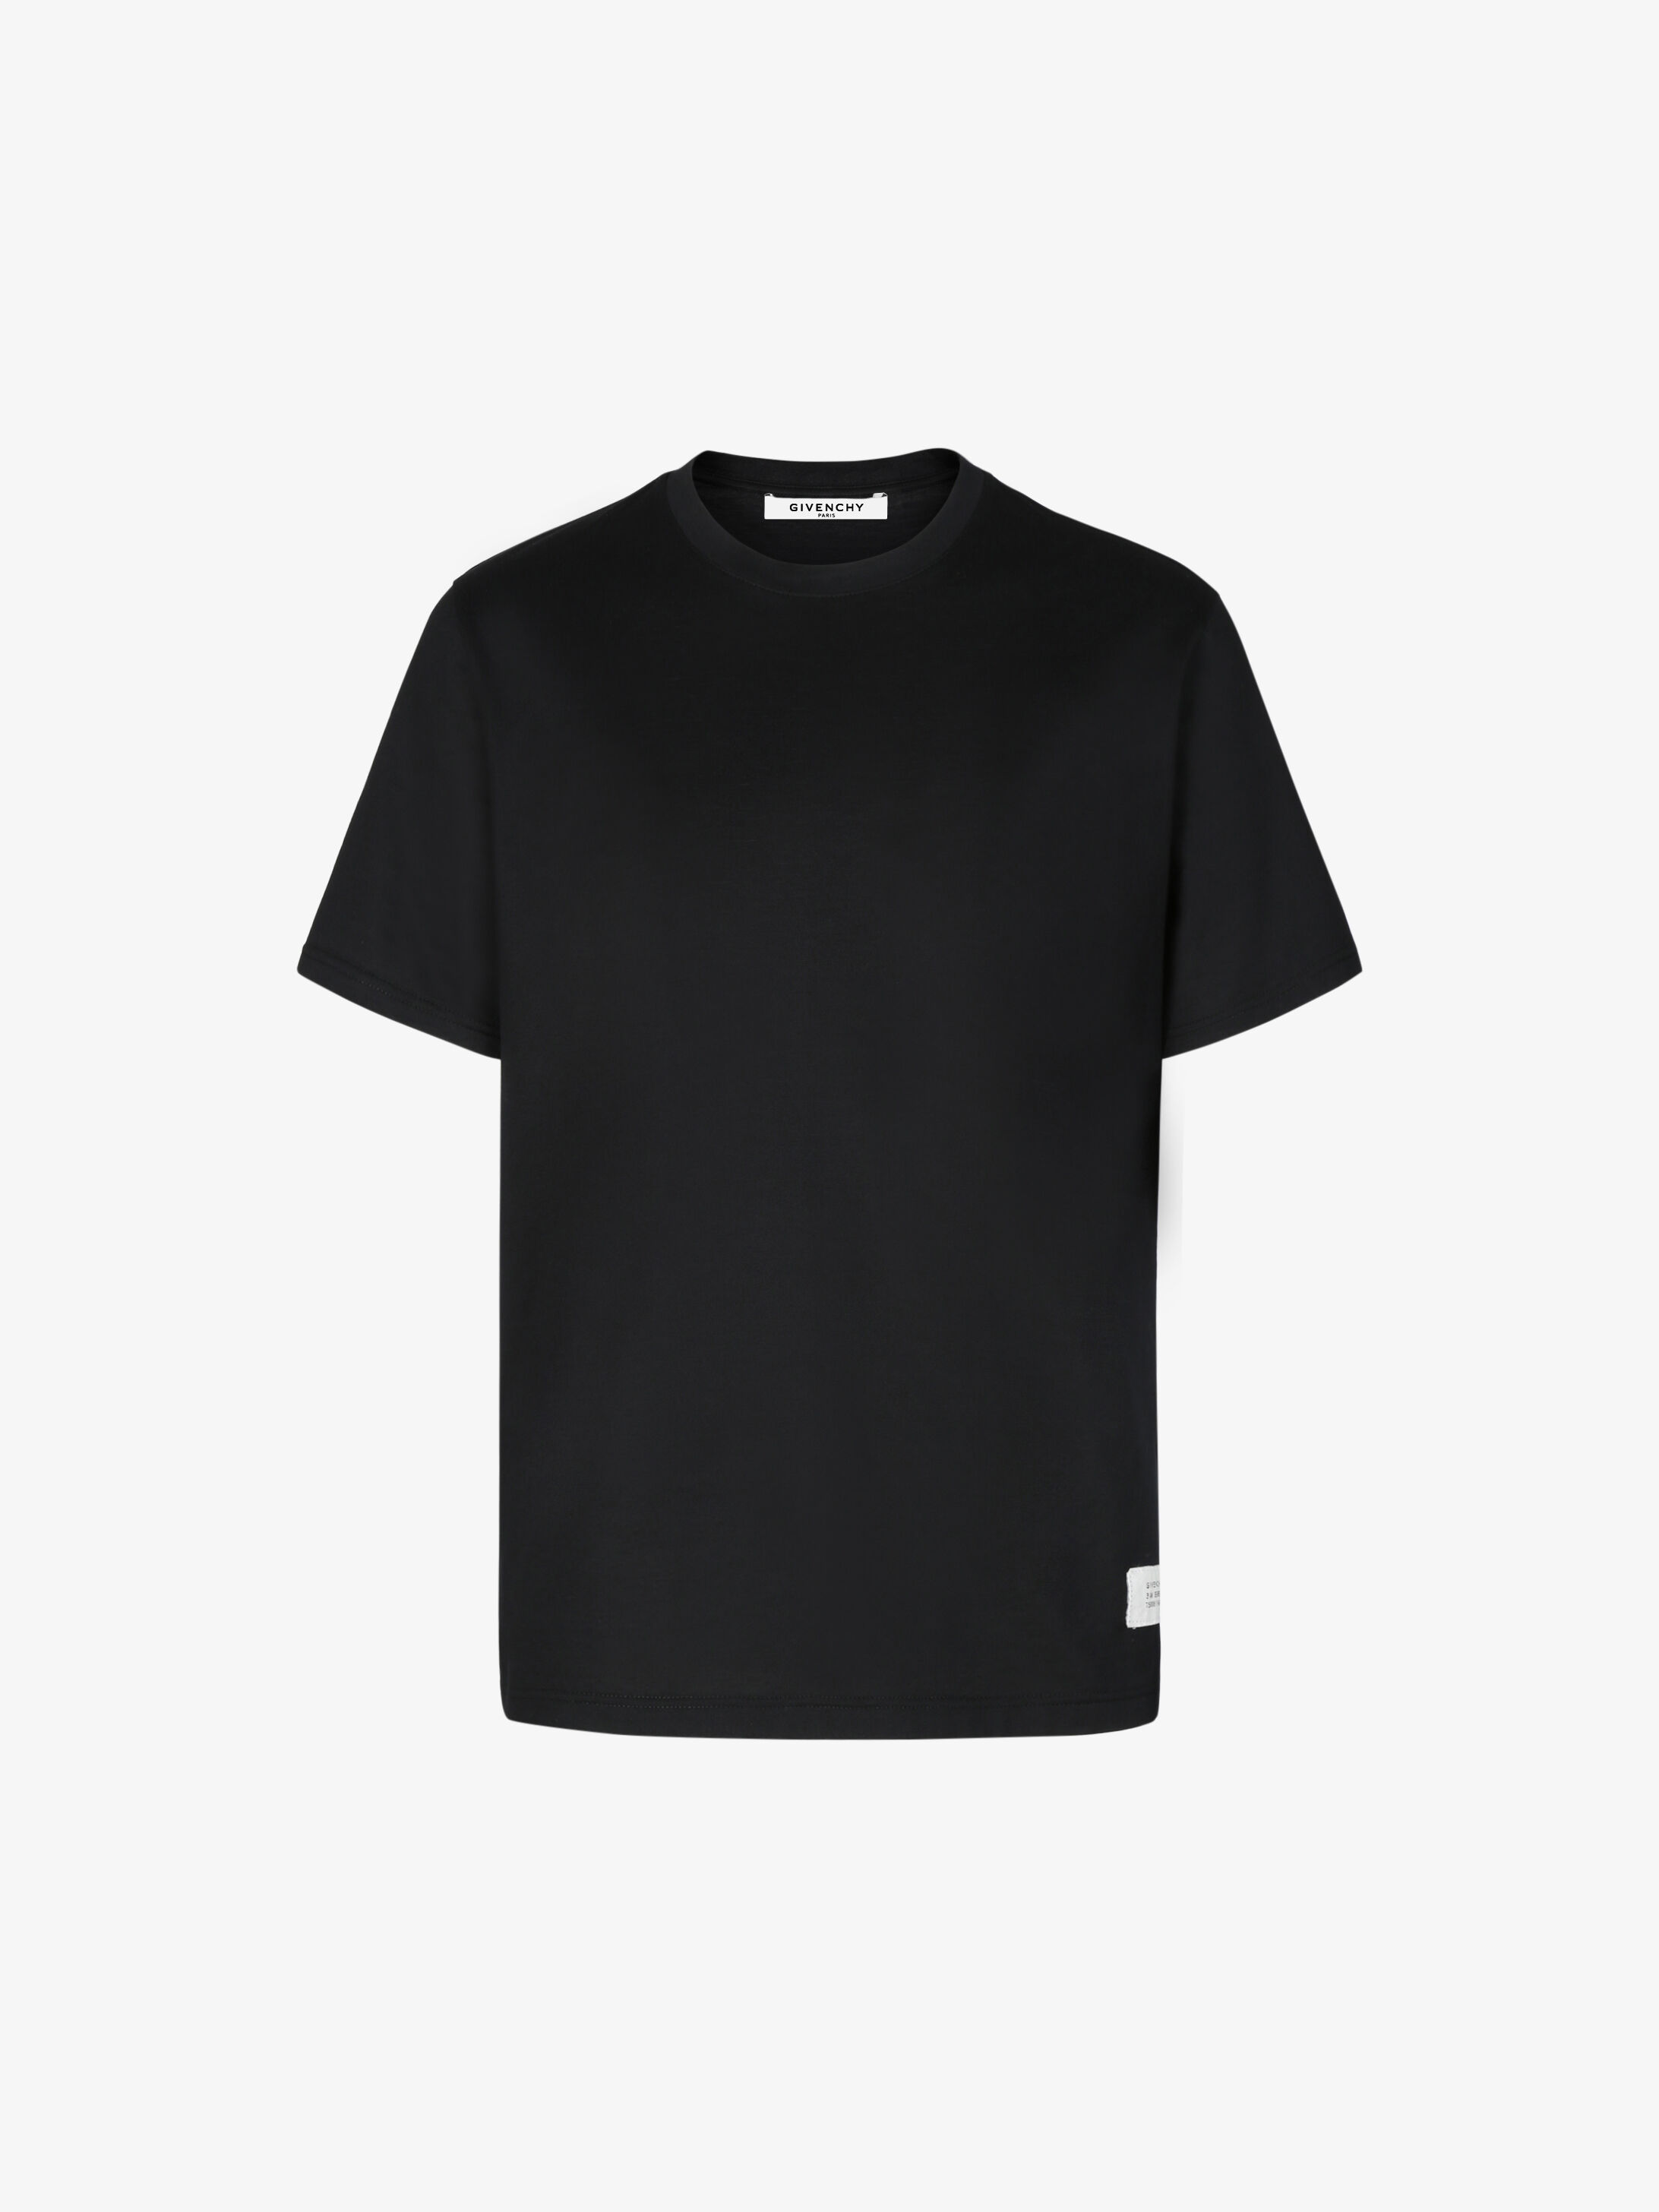 dcee050b Men's T-Shirts collection by Givenchy. | GIVENCHY Paris